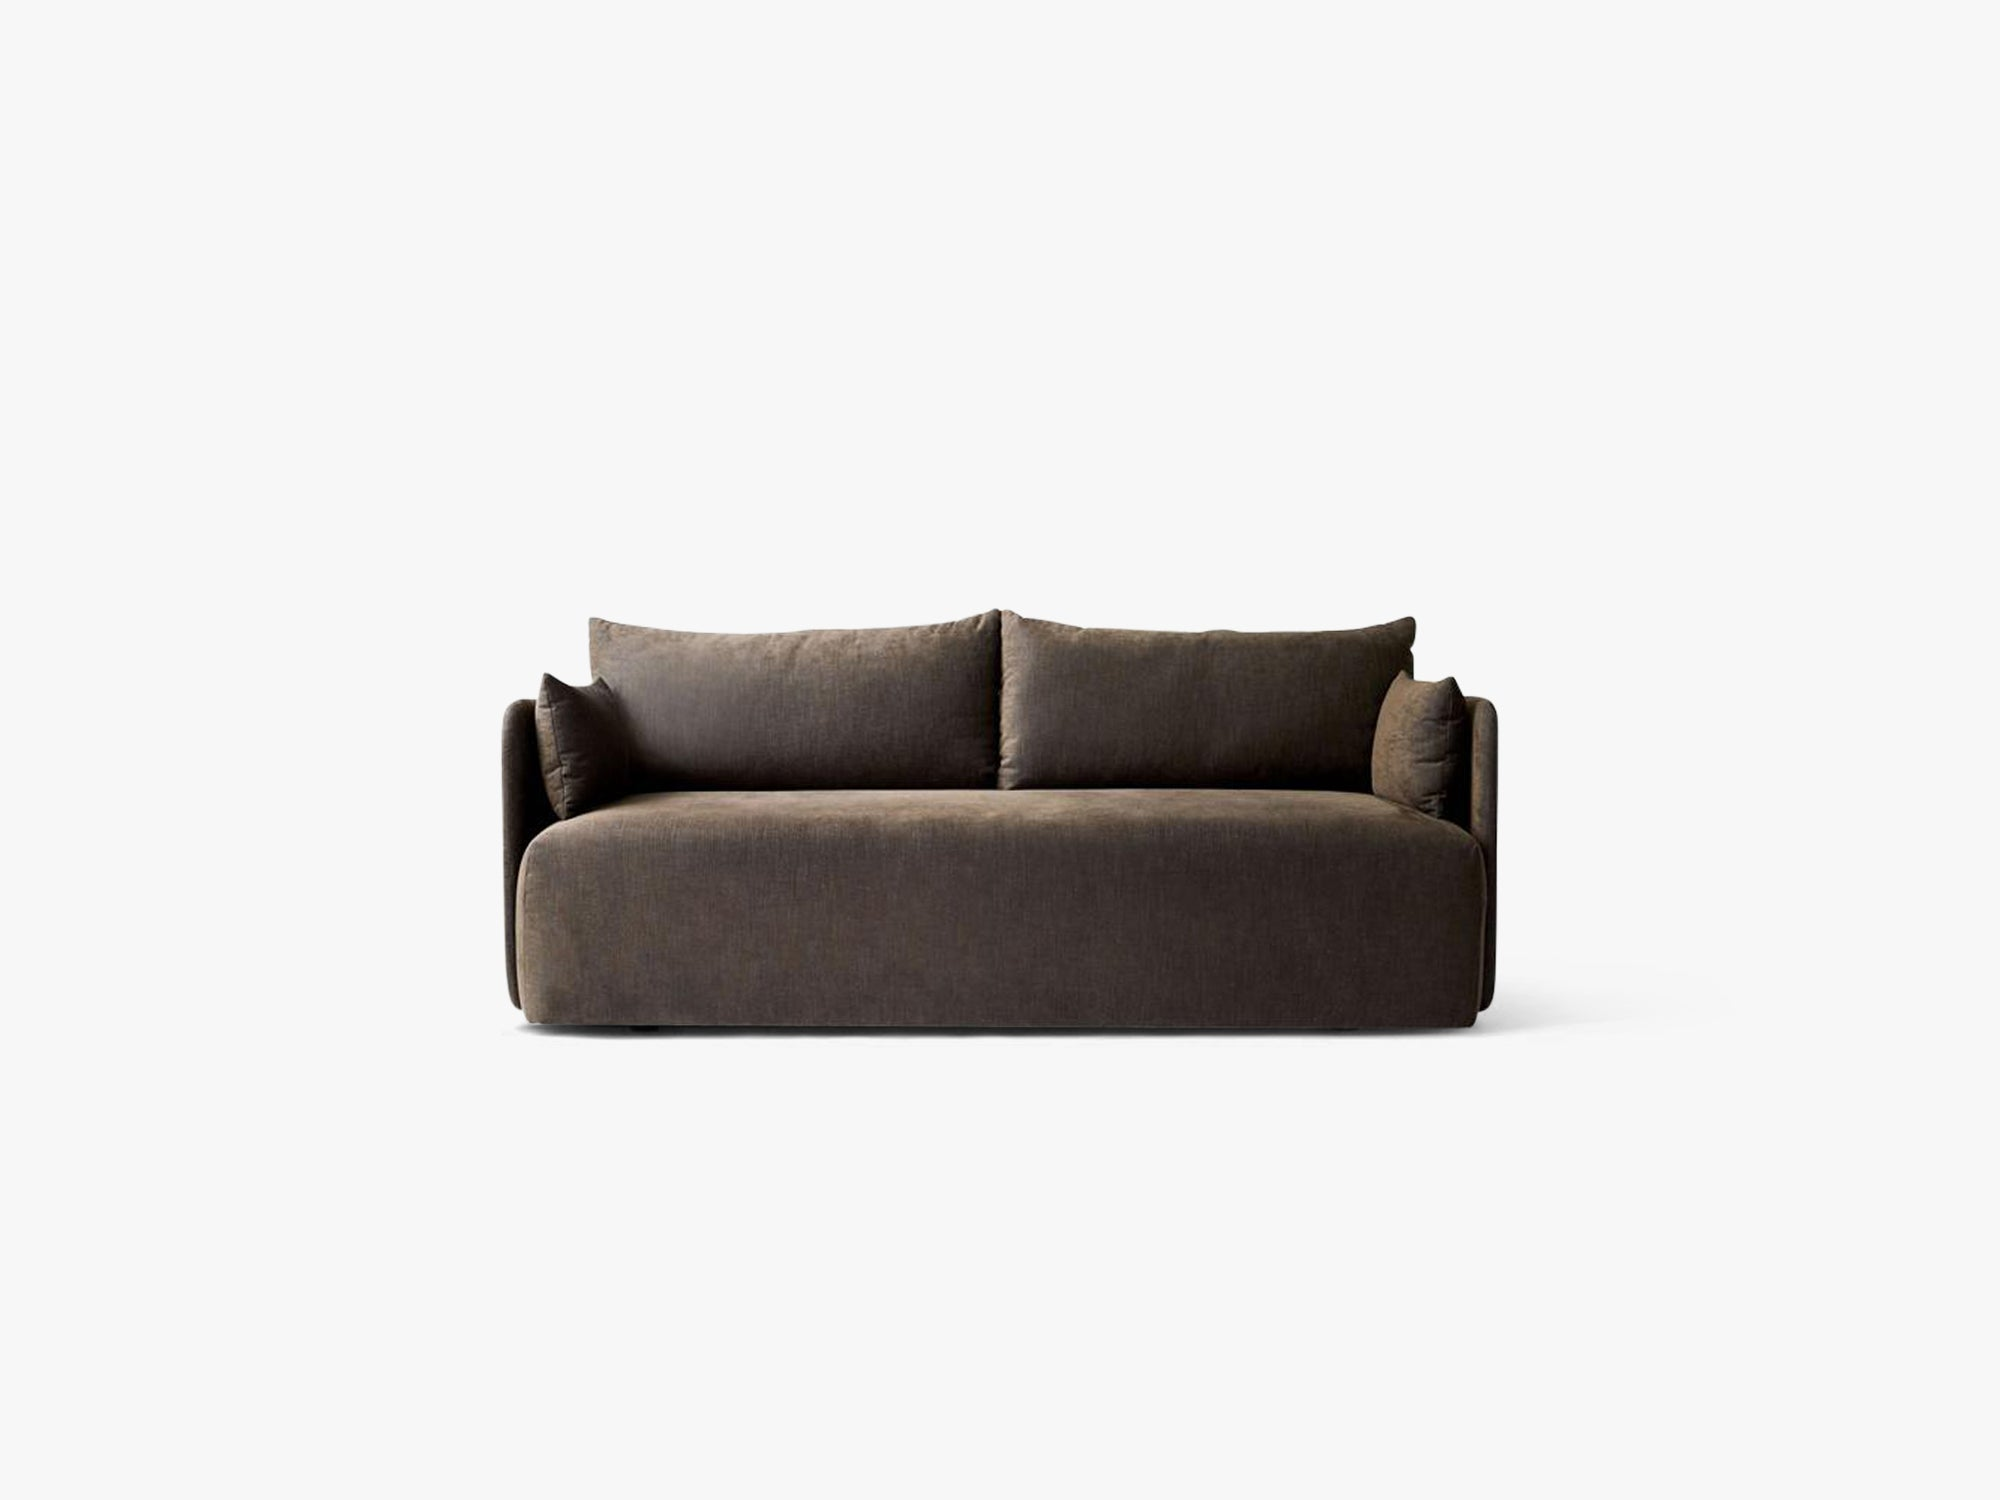 Offset Sofa, 2 seater - cat. 1 fra Menu